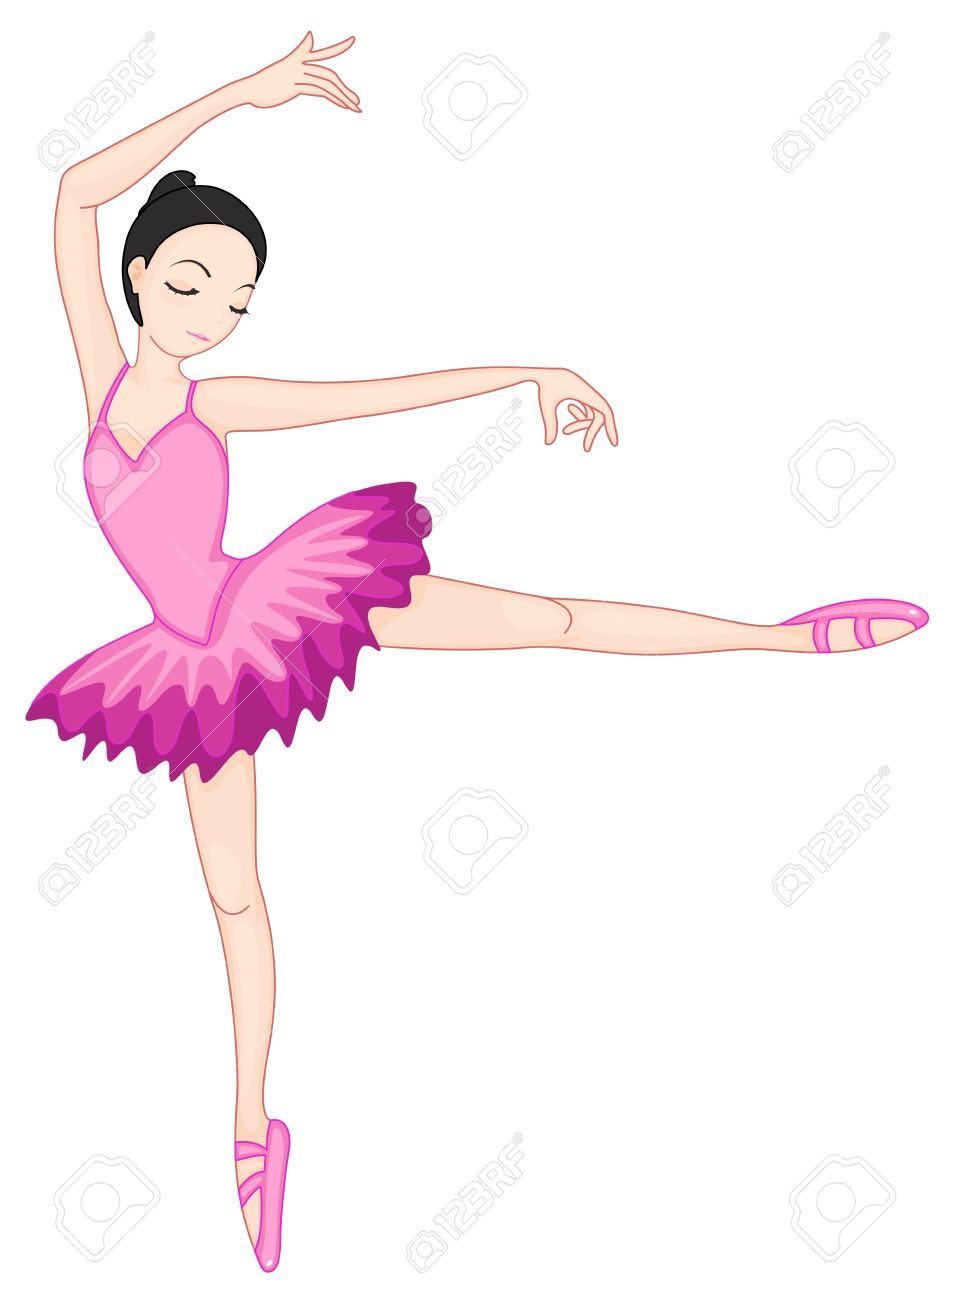 medium resolution of illustration of a ballerina pose on white royalty free cliparts vectors and stock illustration image 13268644